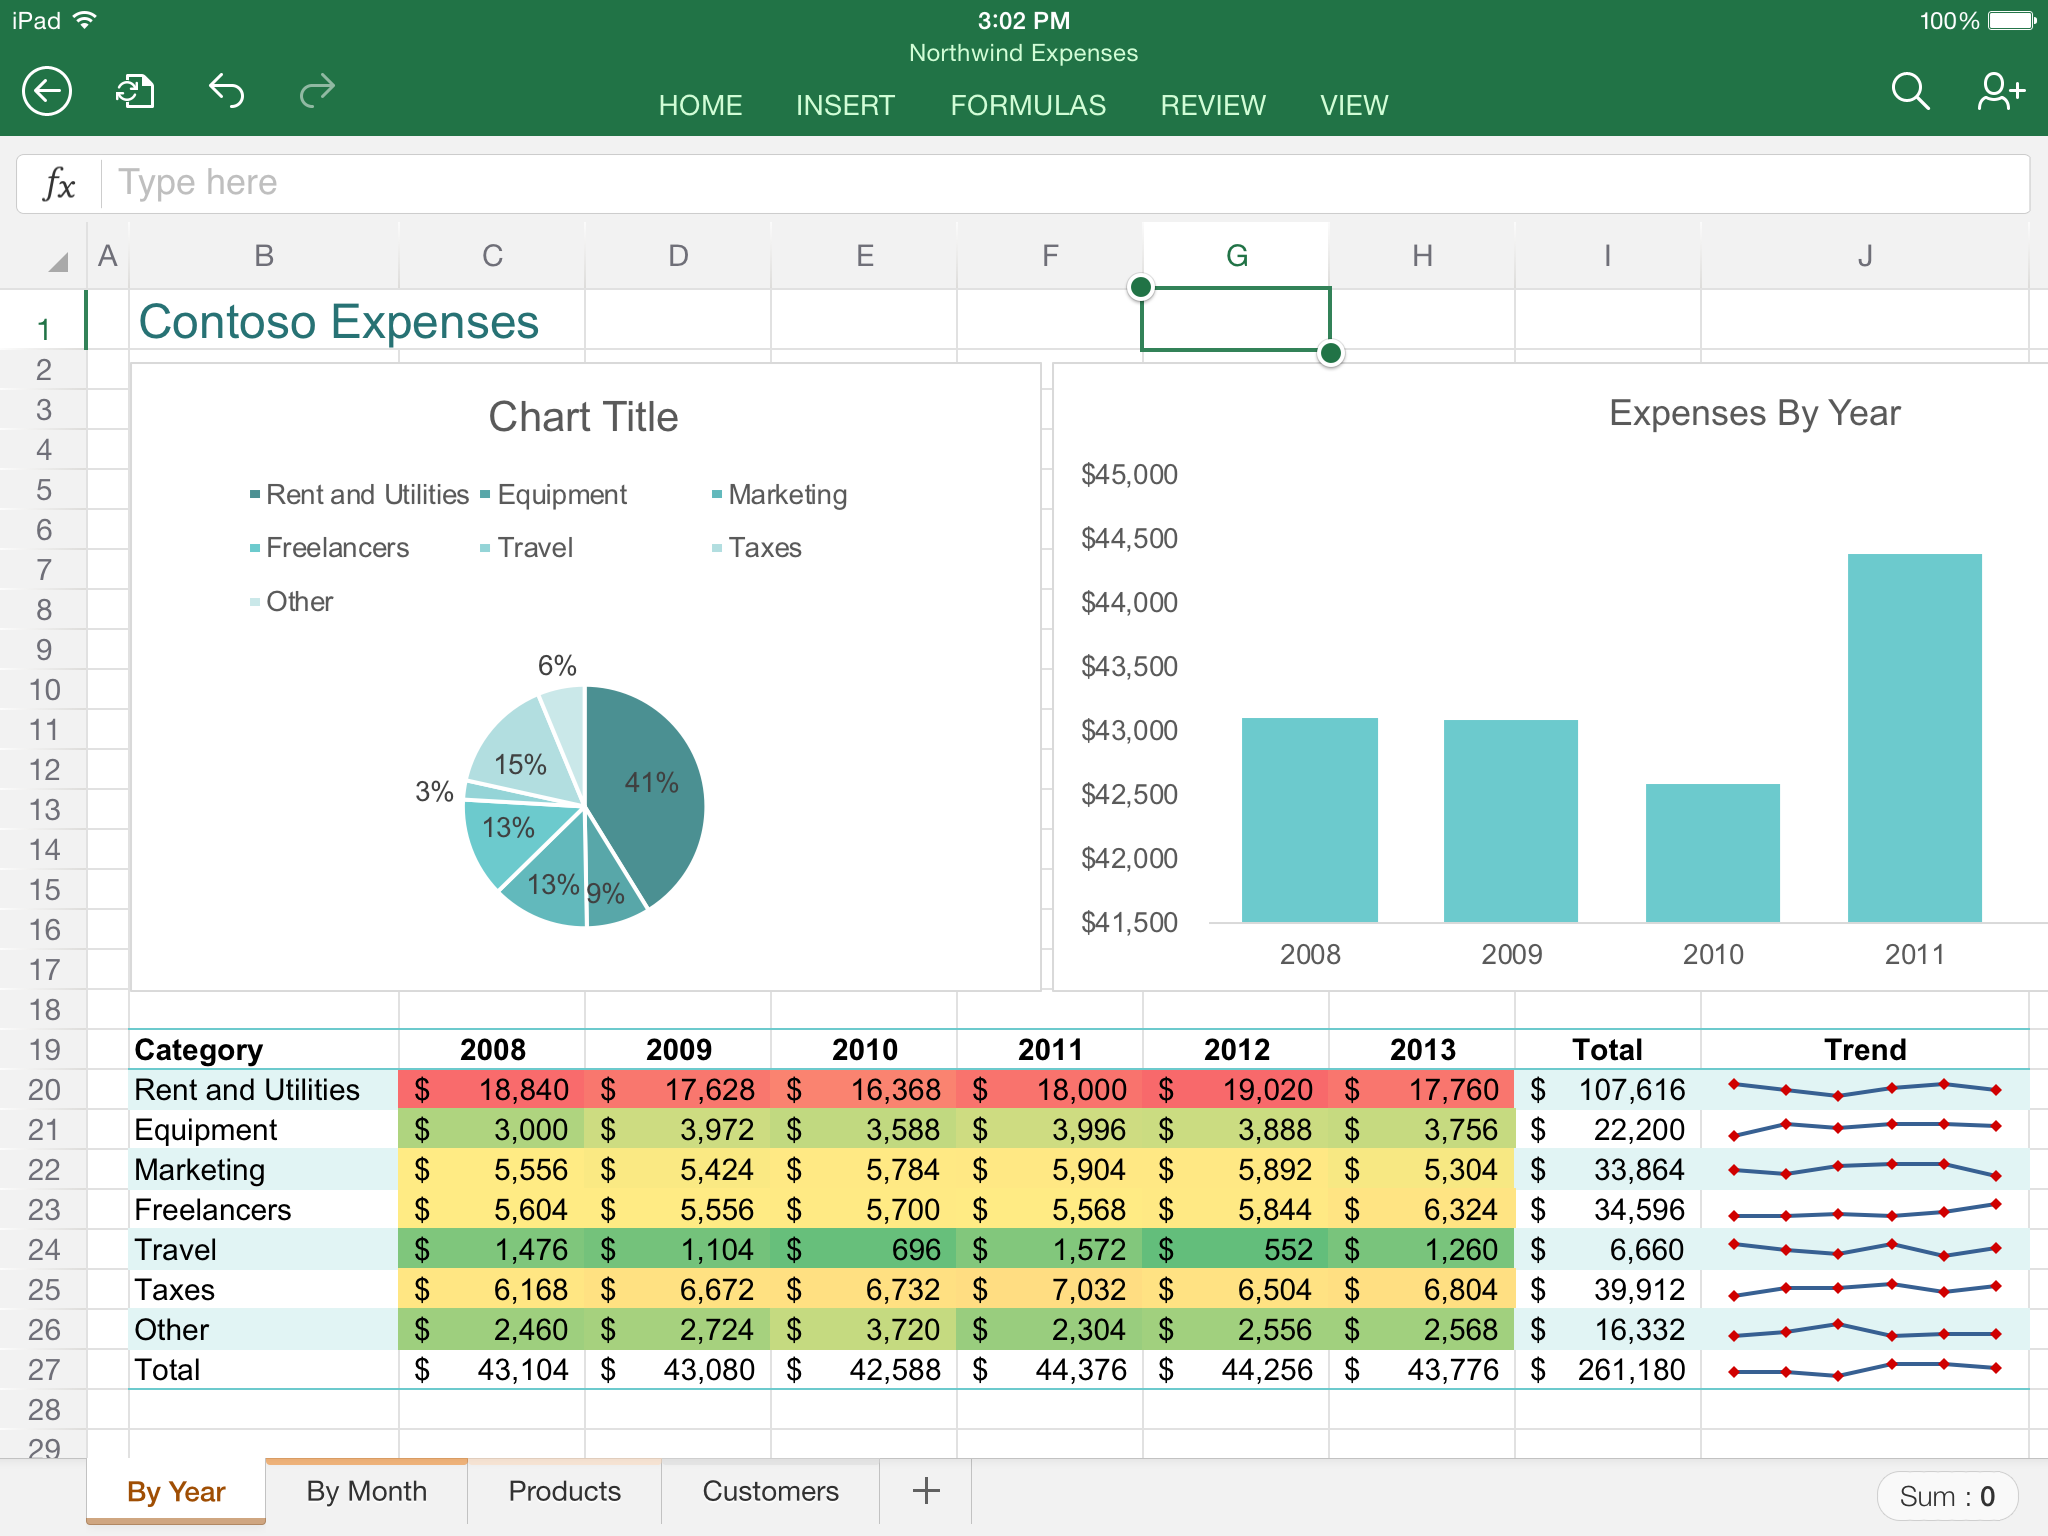 Ediblewildsus  Surprising App Highlight Excel  Mobile Digital Now With Goodlooking Excel In Action With Delightful Concatenate Two Columns In Excel Also Split A Column In Excel In Addition Excel Workbook Definition And Microsoft Excel Book As Well As Waterfall Graph Excel Additionally Excel For Mac  From Youstonybrookedu With Ediblewildsus  Goodlooking App Highlight Excel  Mobile Digital Now With Delightful Excel In Action And Surprising Concatenate Two Columns In Excel Also Split A Column In Excel In Addition Excel Workbook Definition From Youstonybrookedu